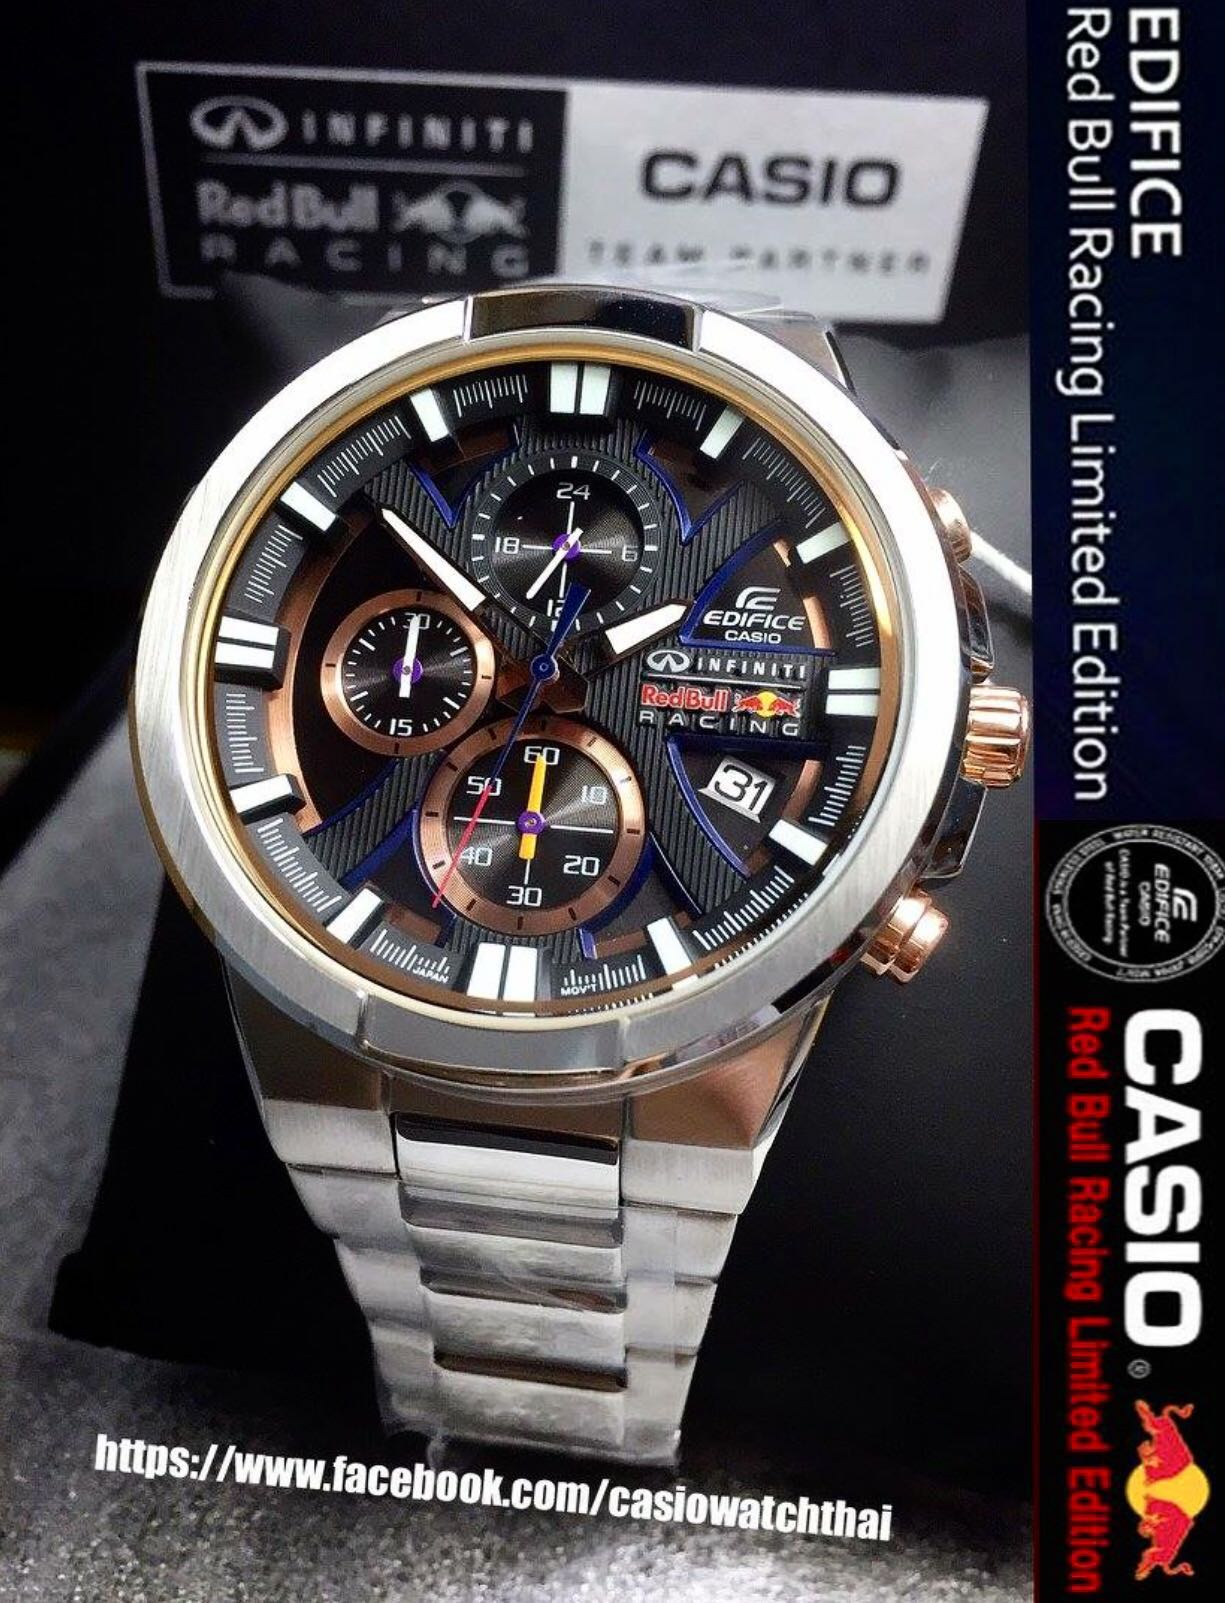 946f42e1bcc5 CASIO EDIFICE INFINITI RED BULL F1 RACER WATCH EFR-544RB-1A LIMITED ...